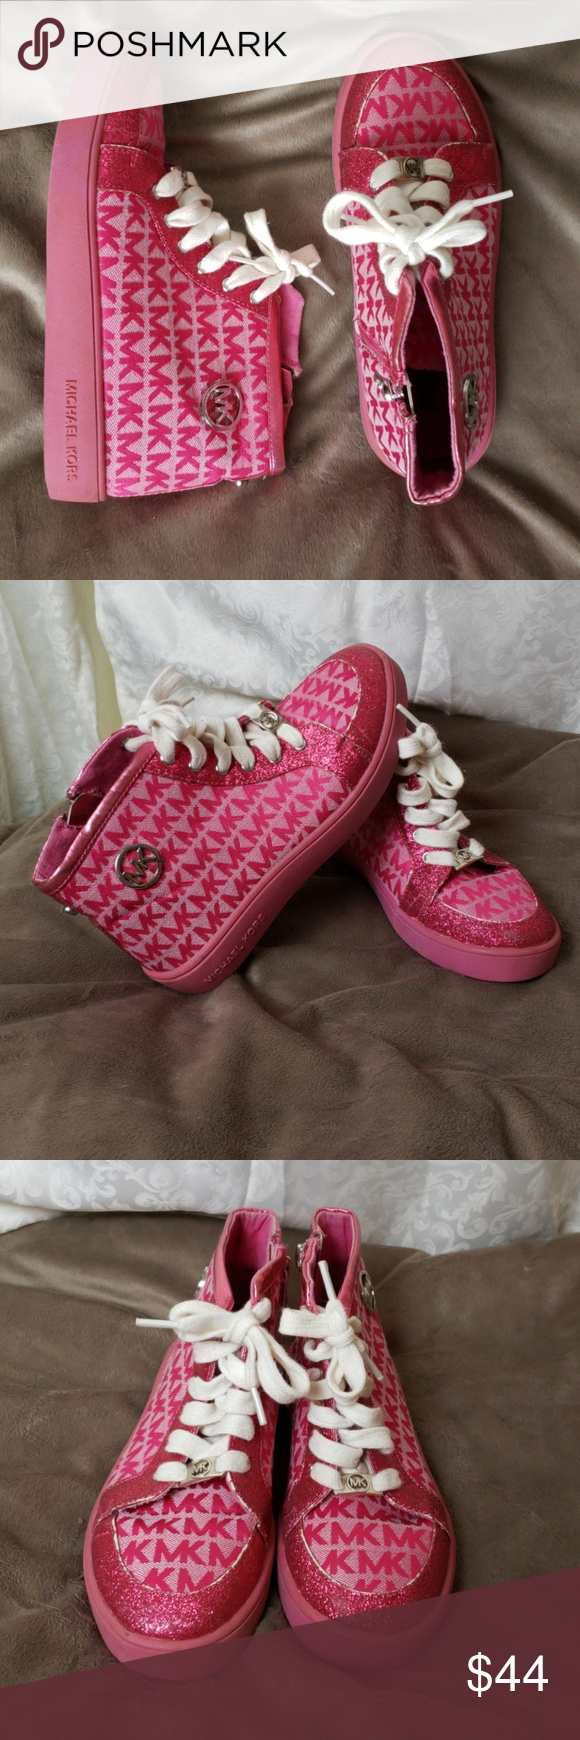 69b22310d3 Michael Kors Sparkly Fuschia High Tops for Girls Beautiful hot pink high  tops by Michael Kors. White laces and emblem on sides of each shoe.